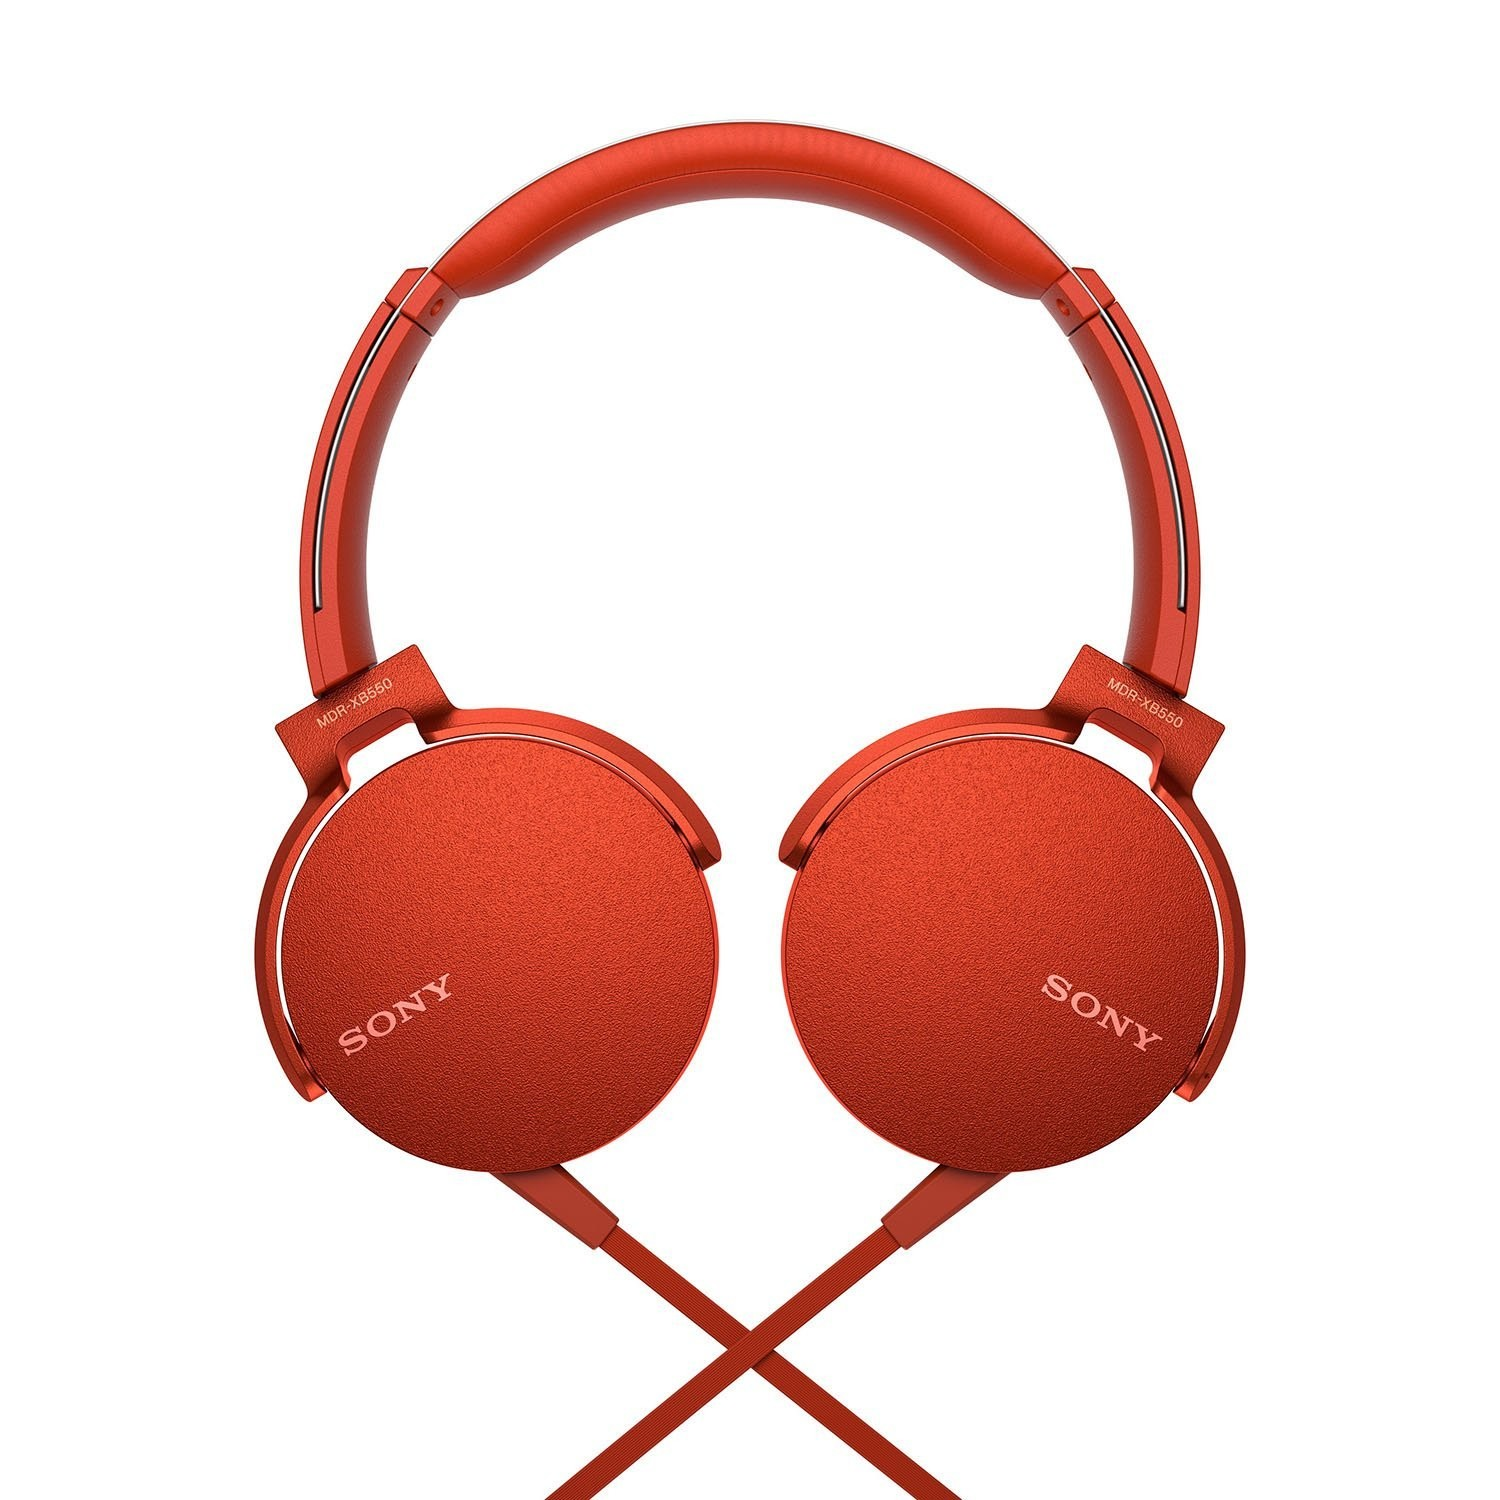 Sony Extra Bass MDR-XB550AP On-Ear Headphones, Red